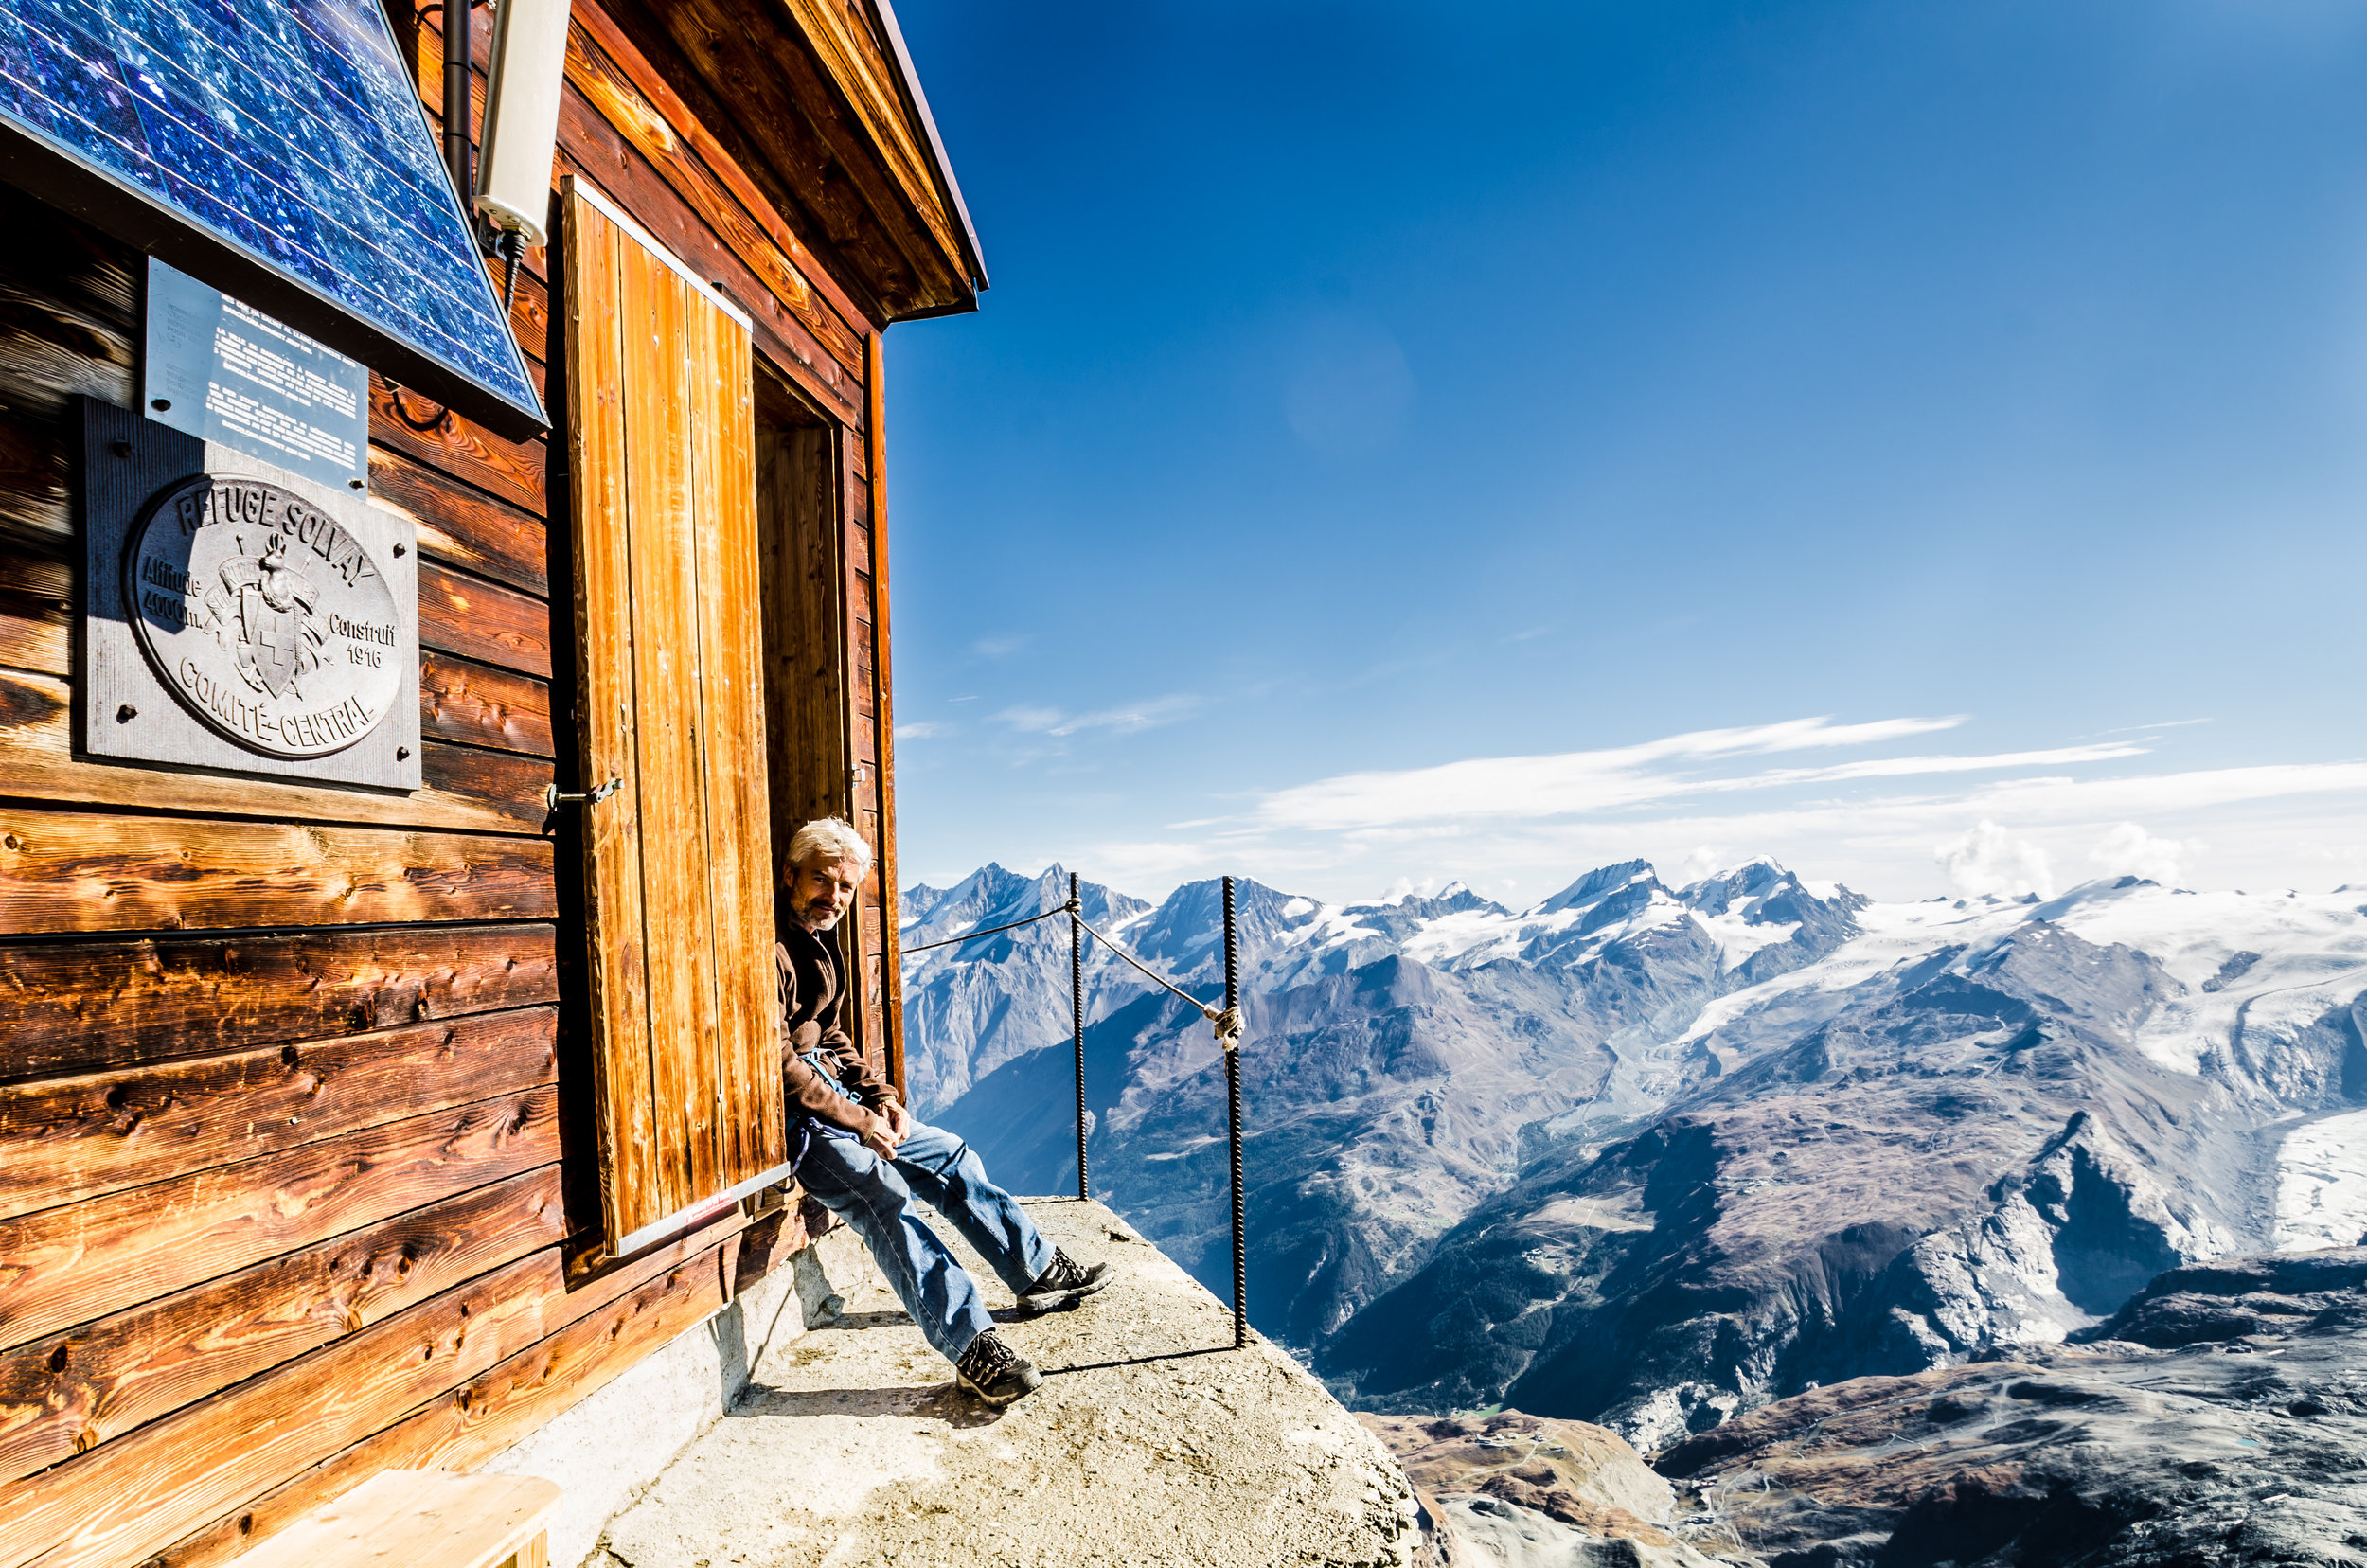 The Solvay Hut was the highest we got, standing on the edge of the mountain at 4000 metres.